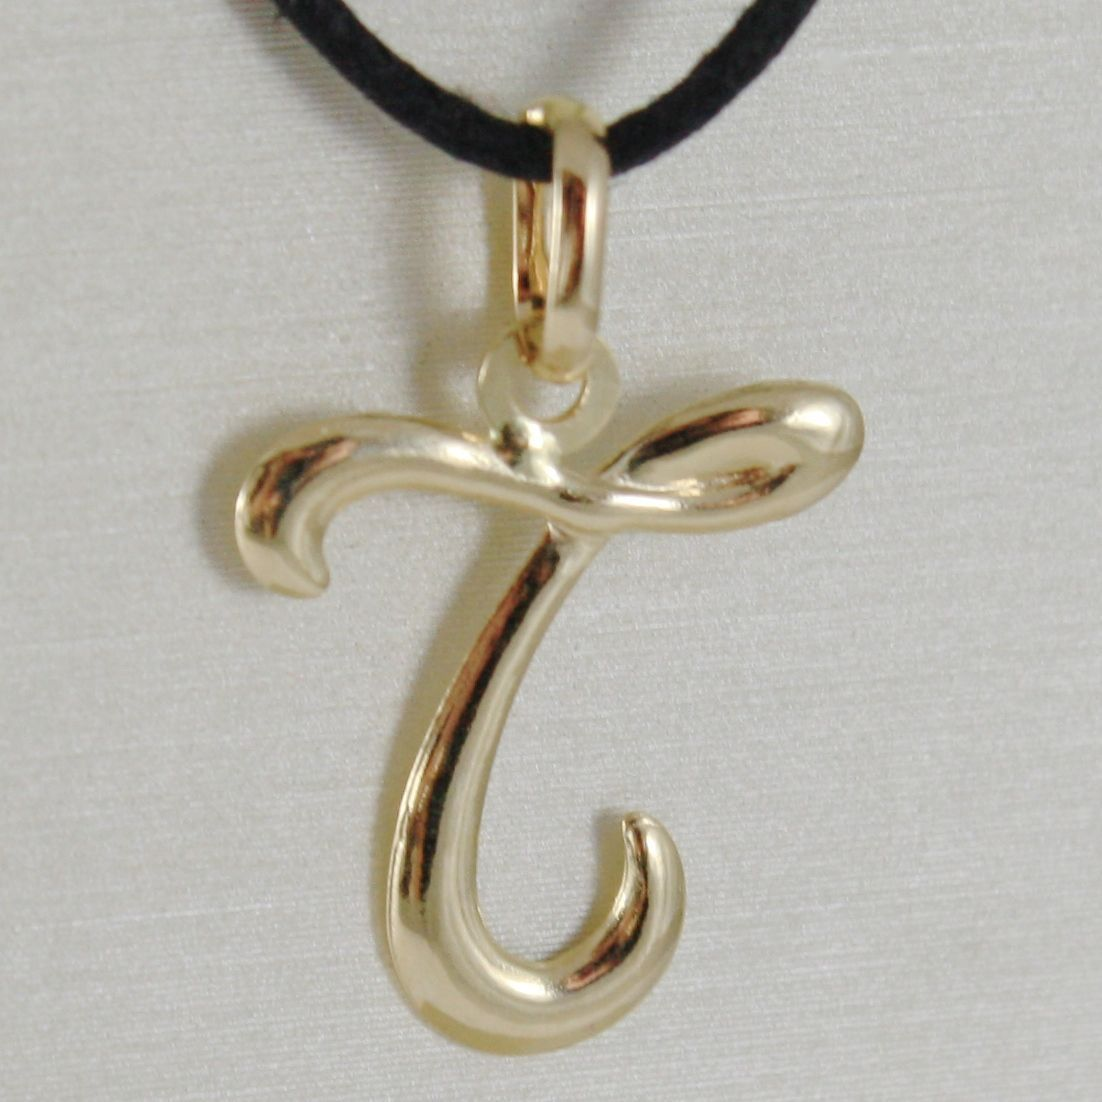 PENDANT YELLOW GOLD 18K WITH INITIAL T LETTER T LUCIDA 2,5 CM WITH CORD